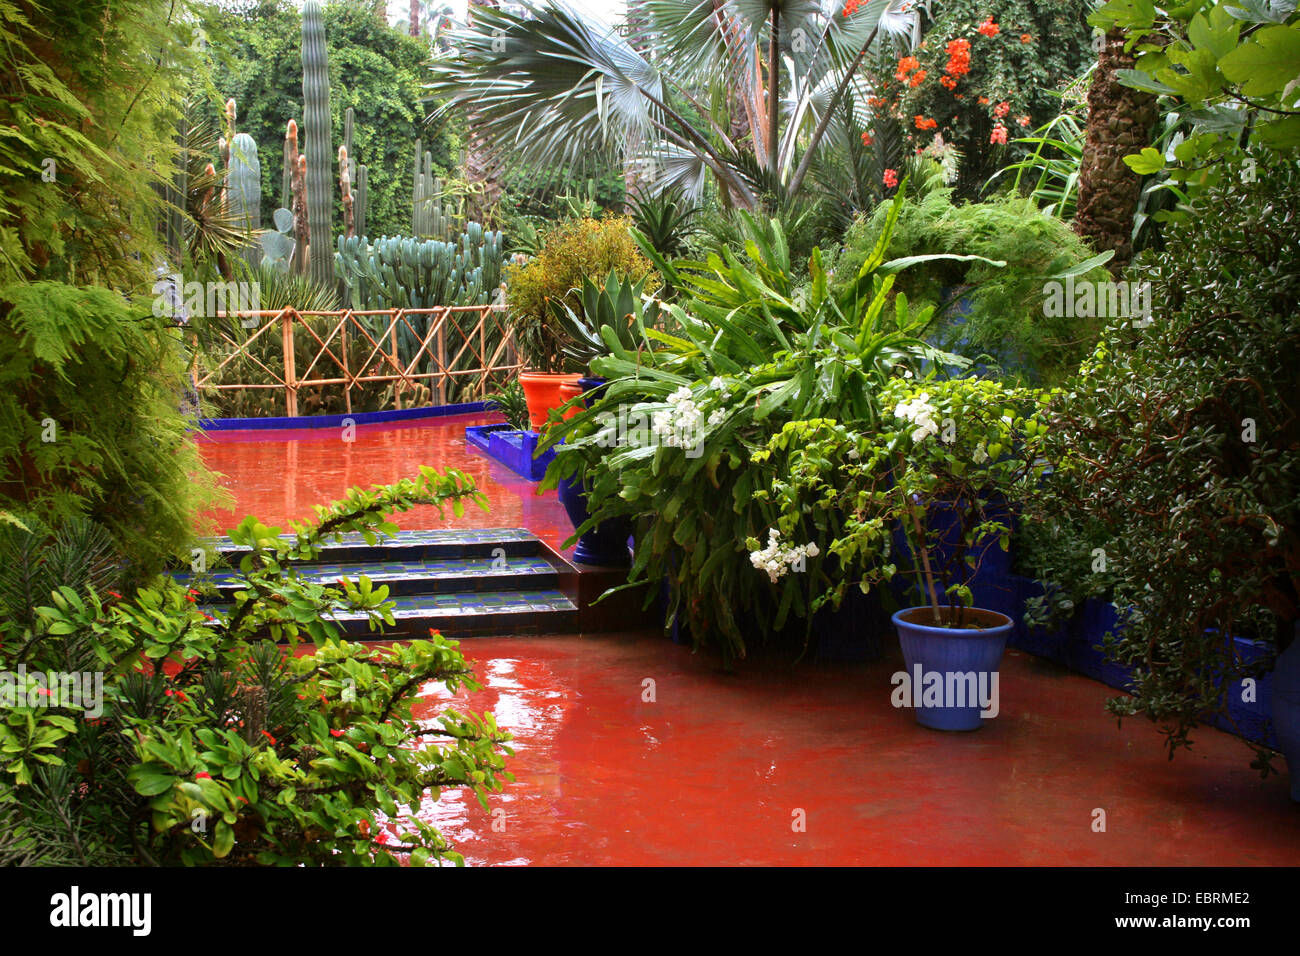 Jardin majorelle botanical garden by yves saint laurent for Jardin yves saint laurent marrakech